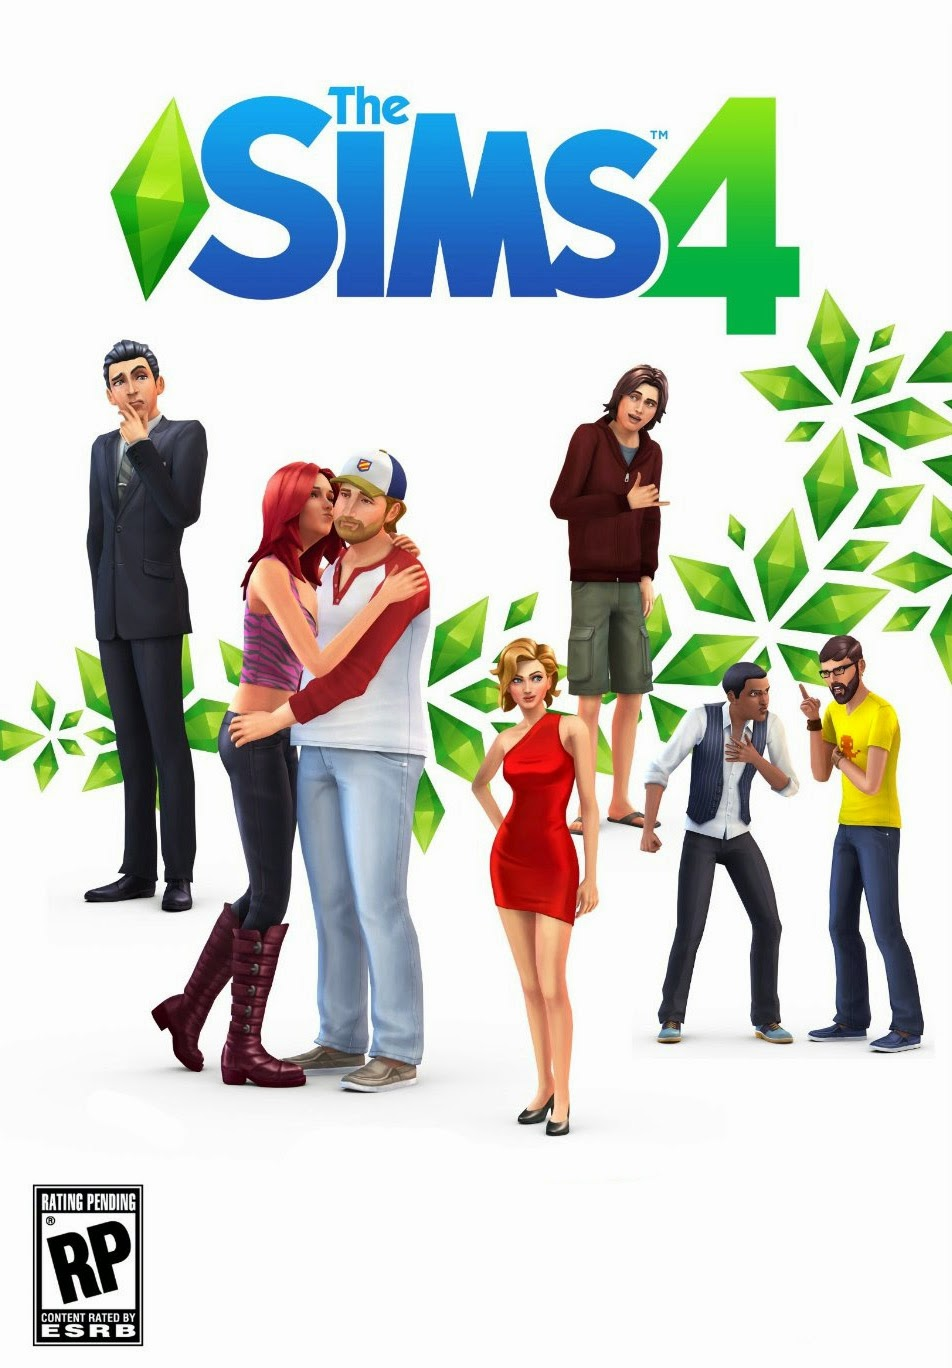 THE SIMS 4 Fully Full Version PC Game Free